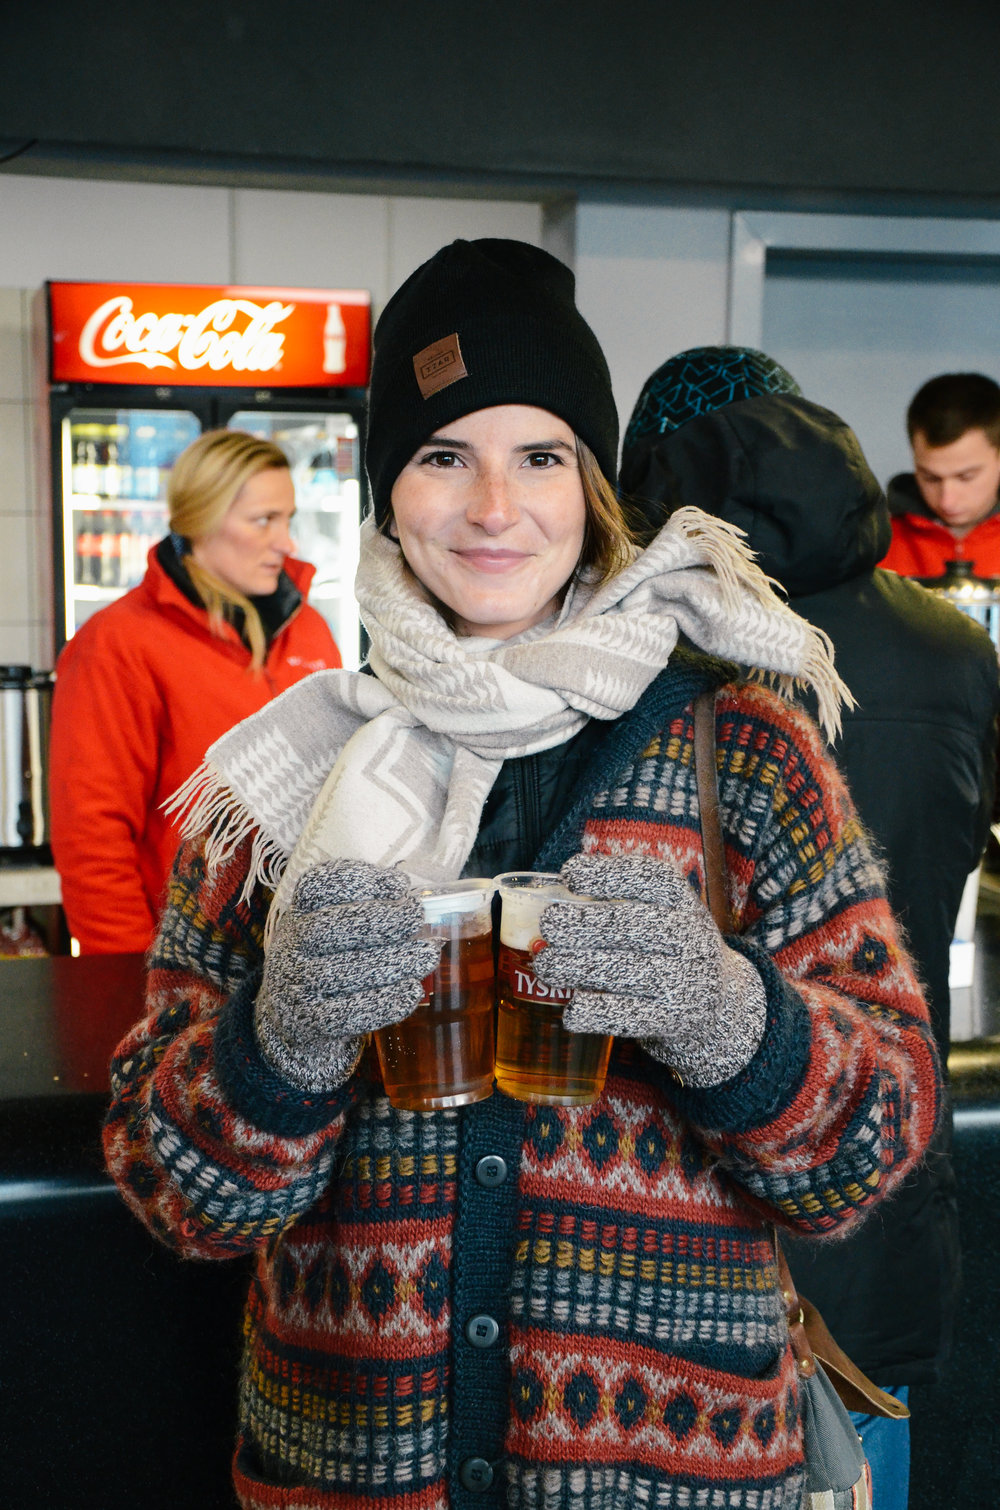 ^^ in the winter they serve warm mulled beer, which is exactly what it sounds like. it sounds a bit strange, but i might actually prefer this to mulled wine!